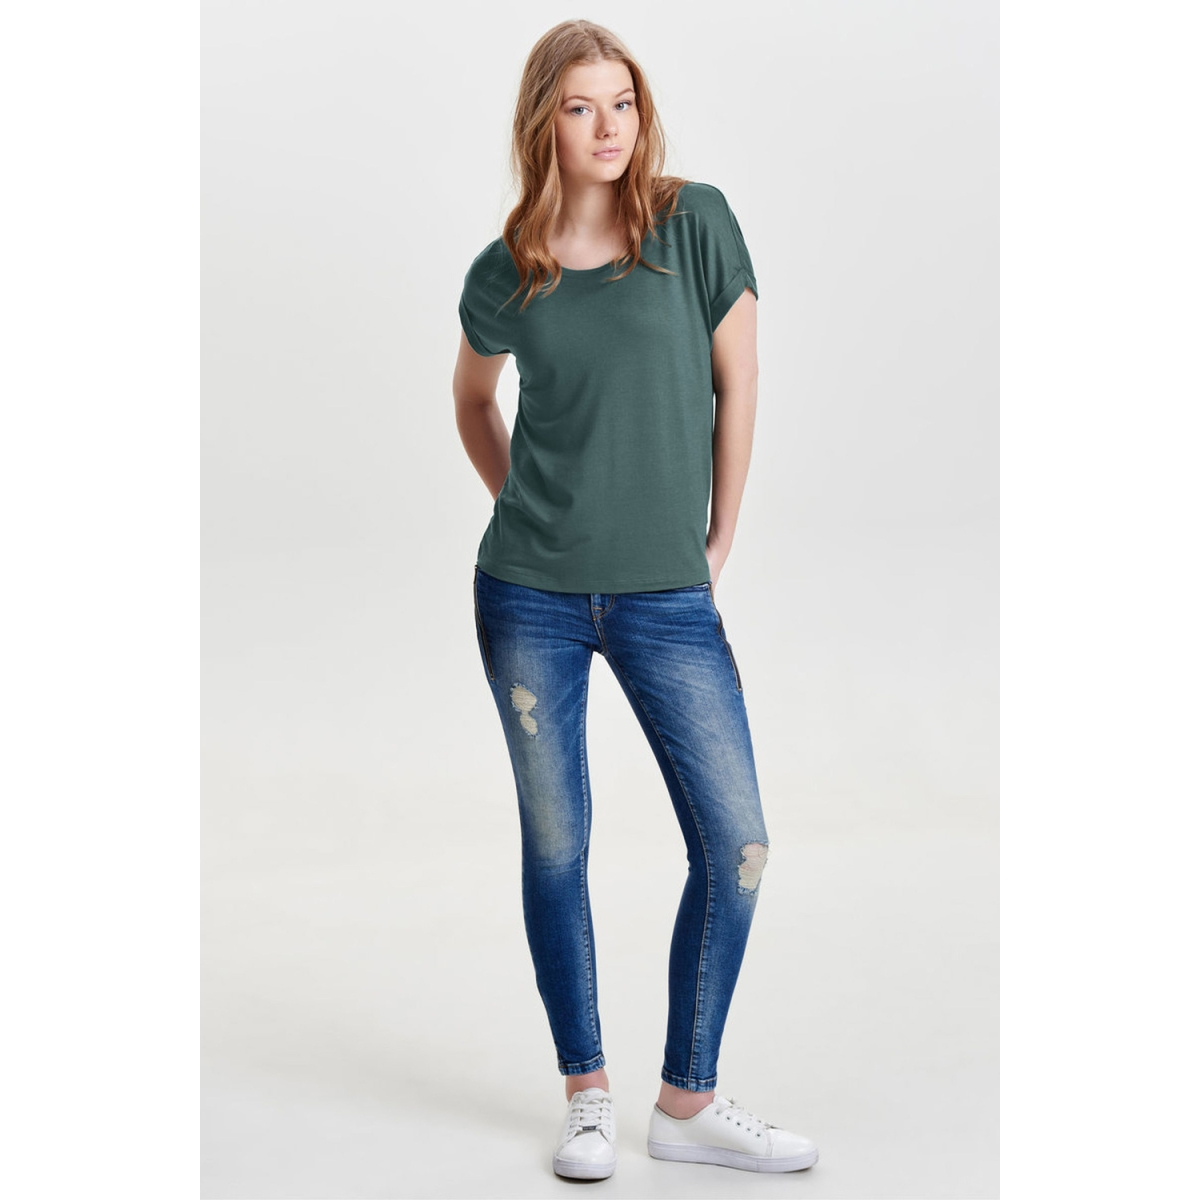 onlmoster s/s o-neck top noos jrs 15106662 only t-shirt balsam green